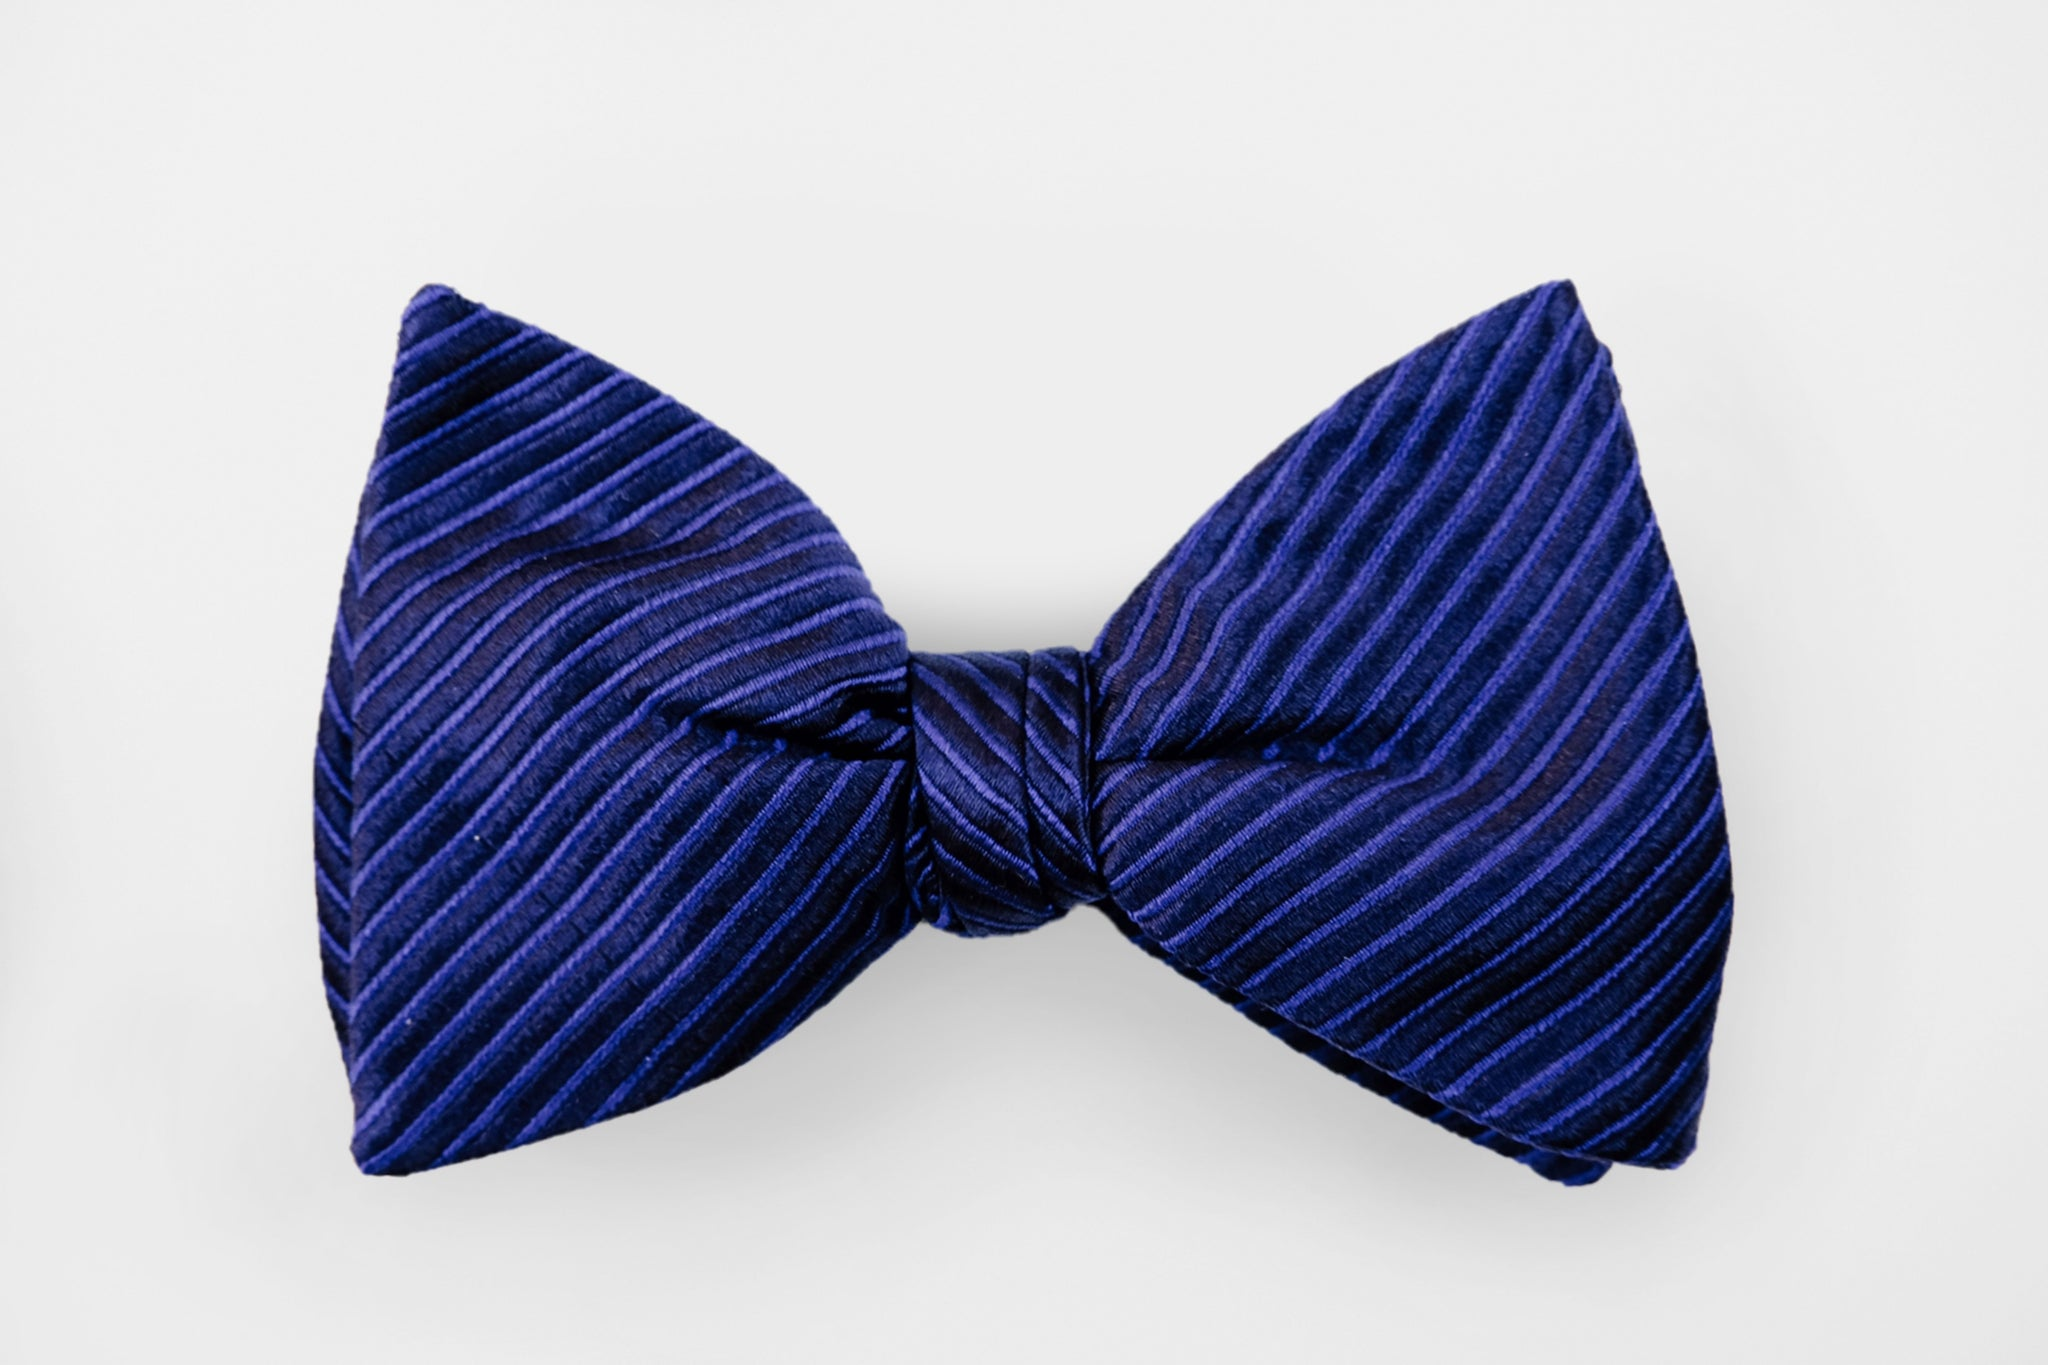 Blue/Black Small Stripe Bow Tie